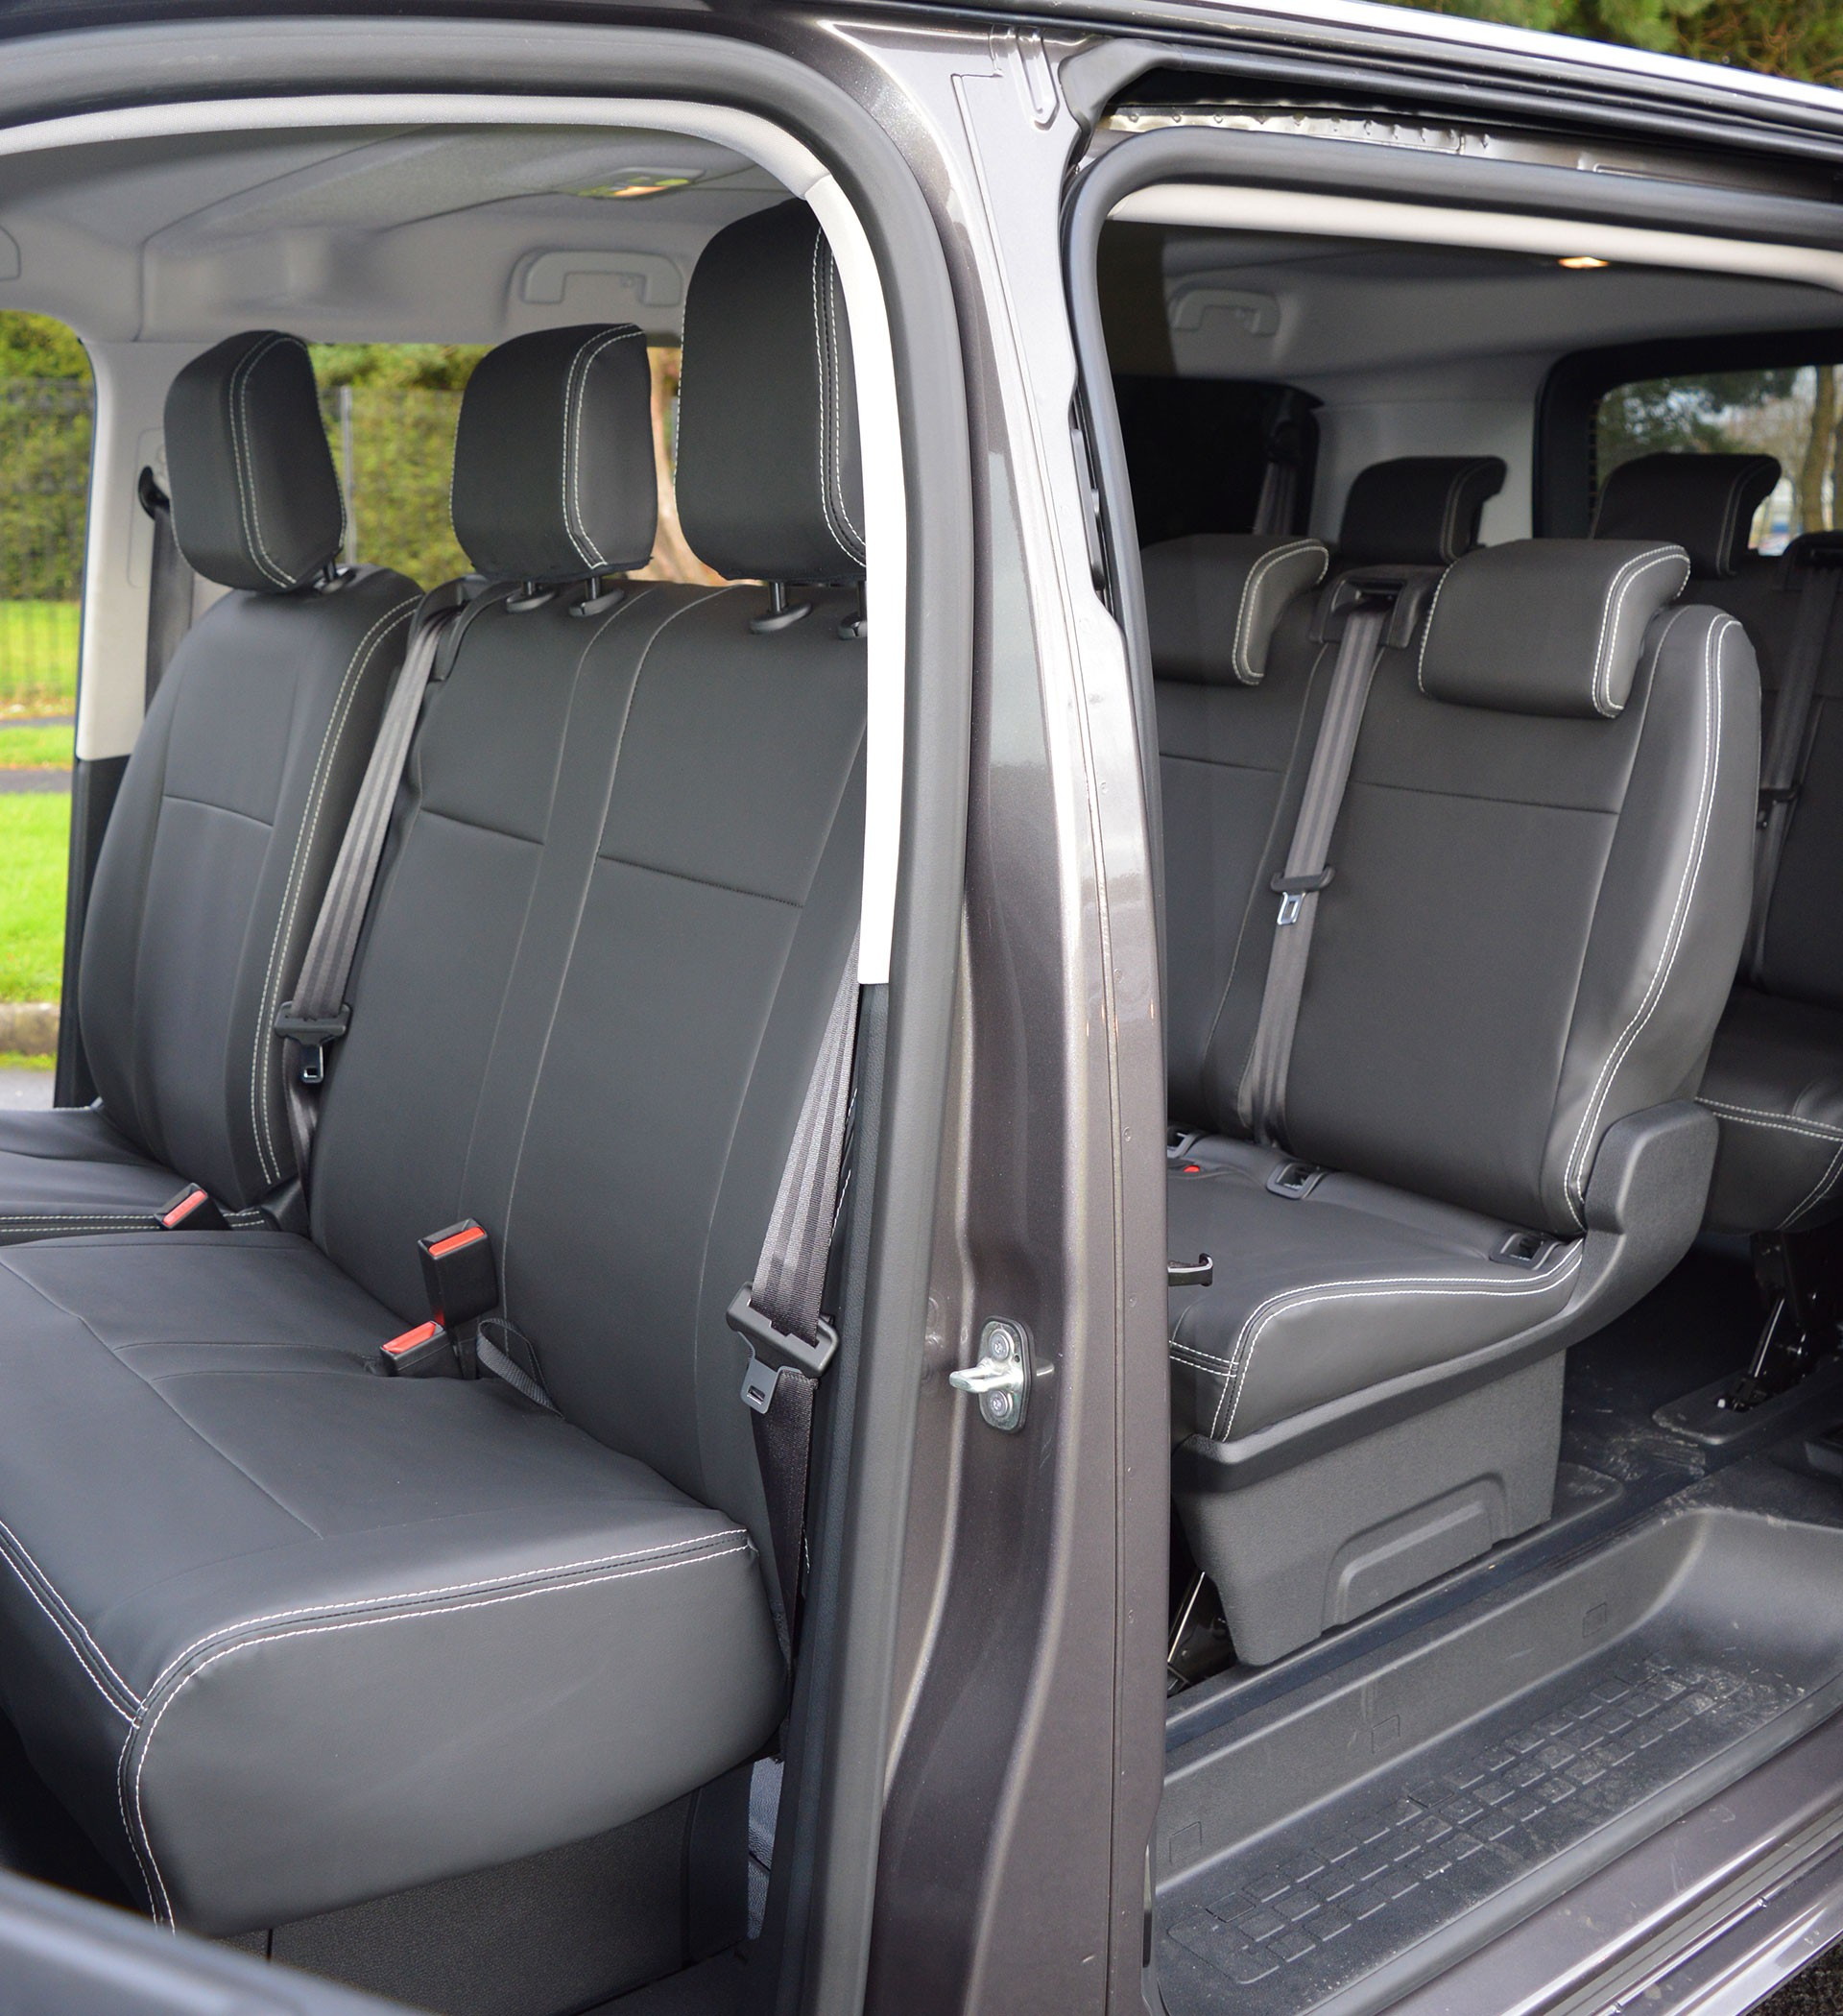 citroen spacetourer 9 seater 2016 tailored waterproof leatherette seat covers ebay. Black Bedroom Furniture Sets. Home Design Ideas